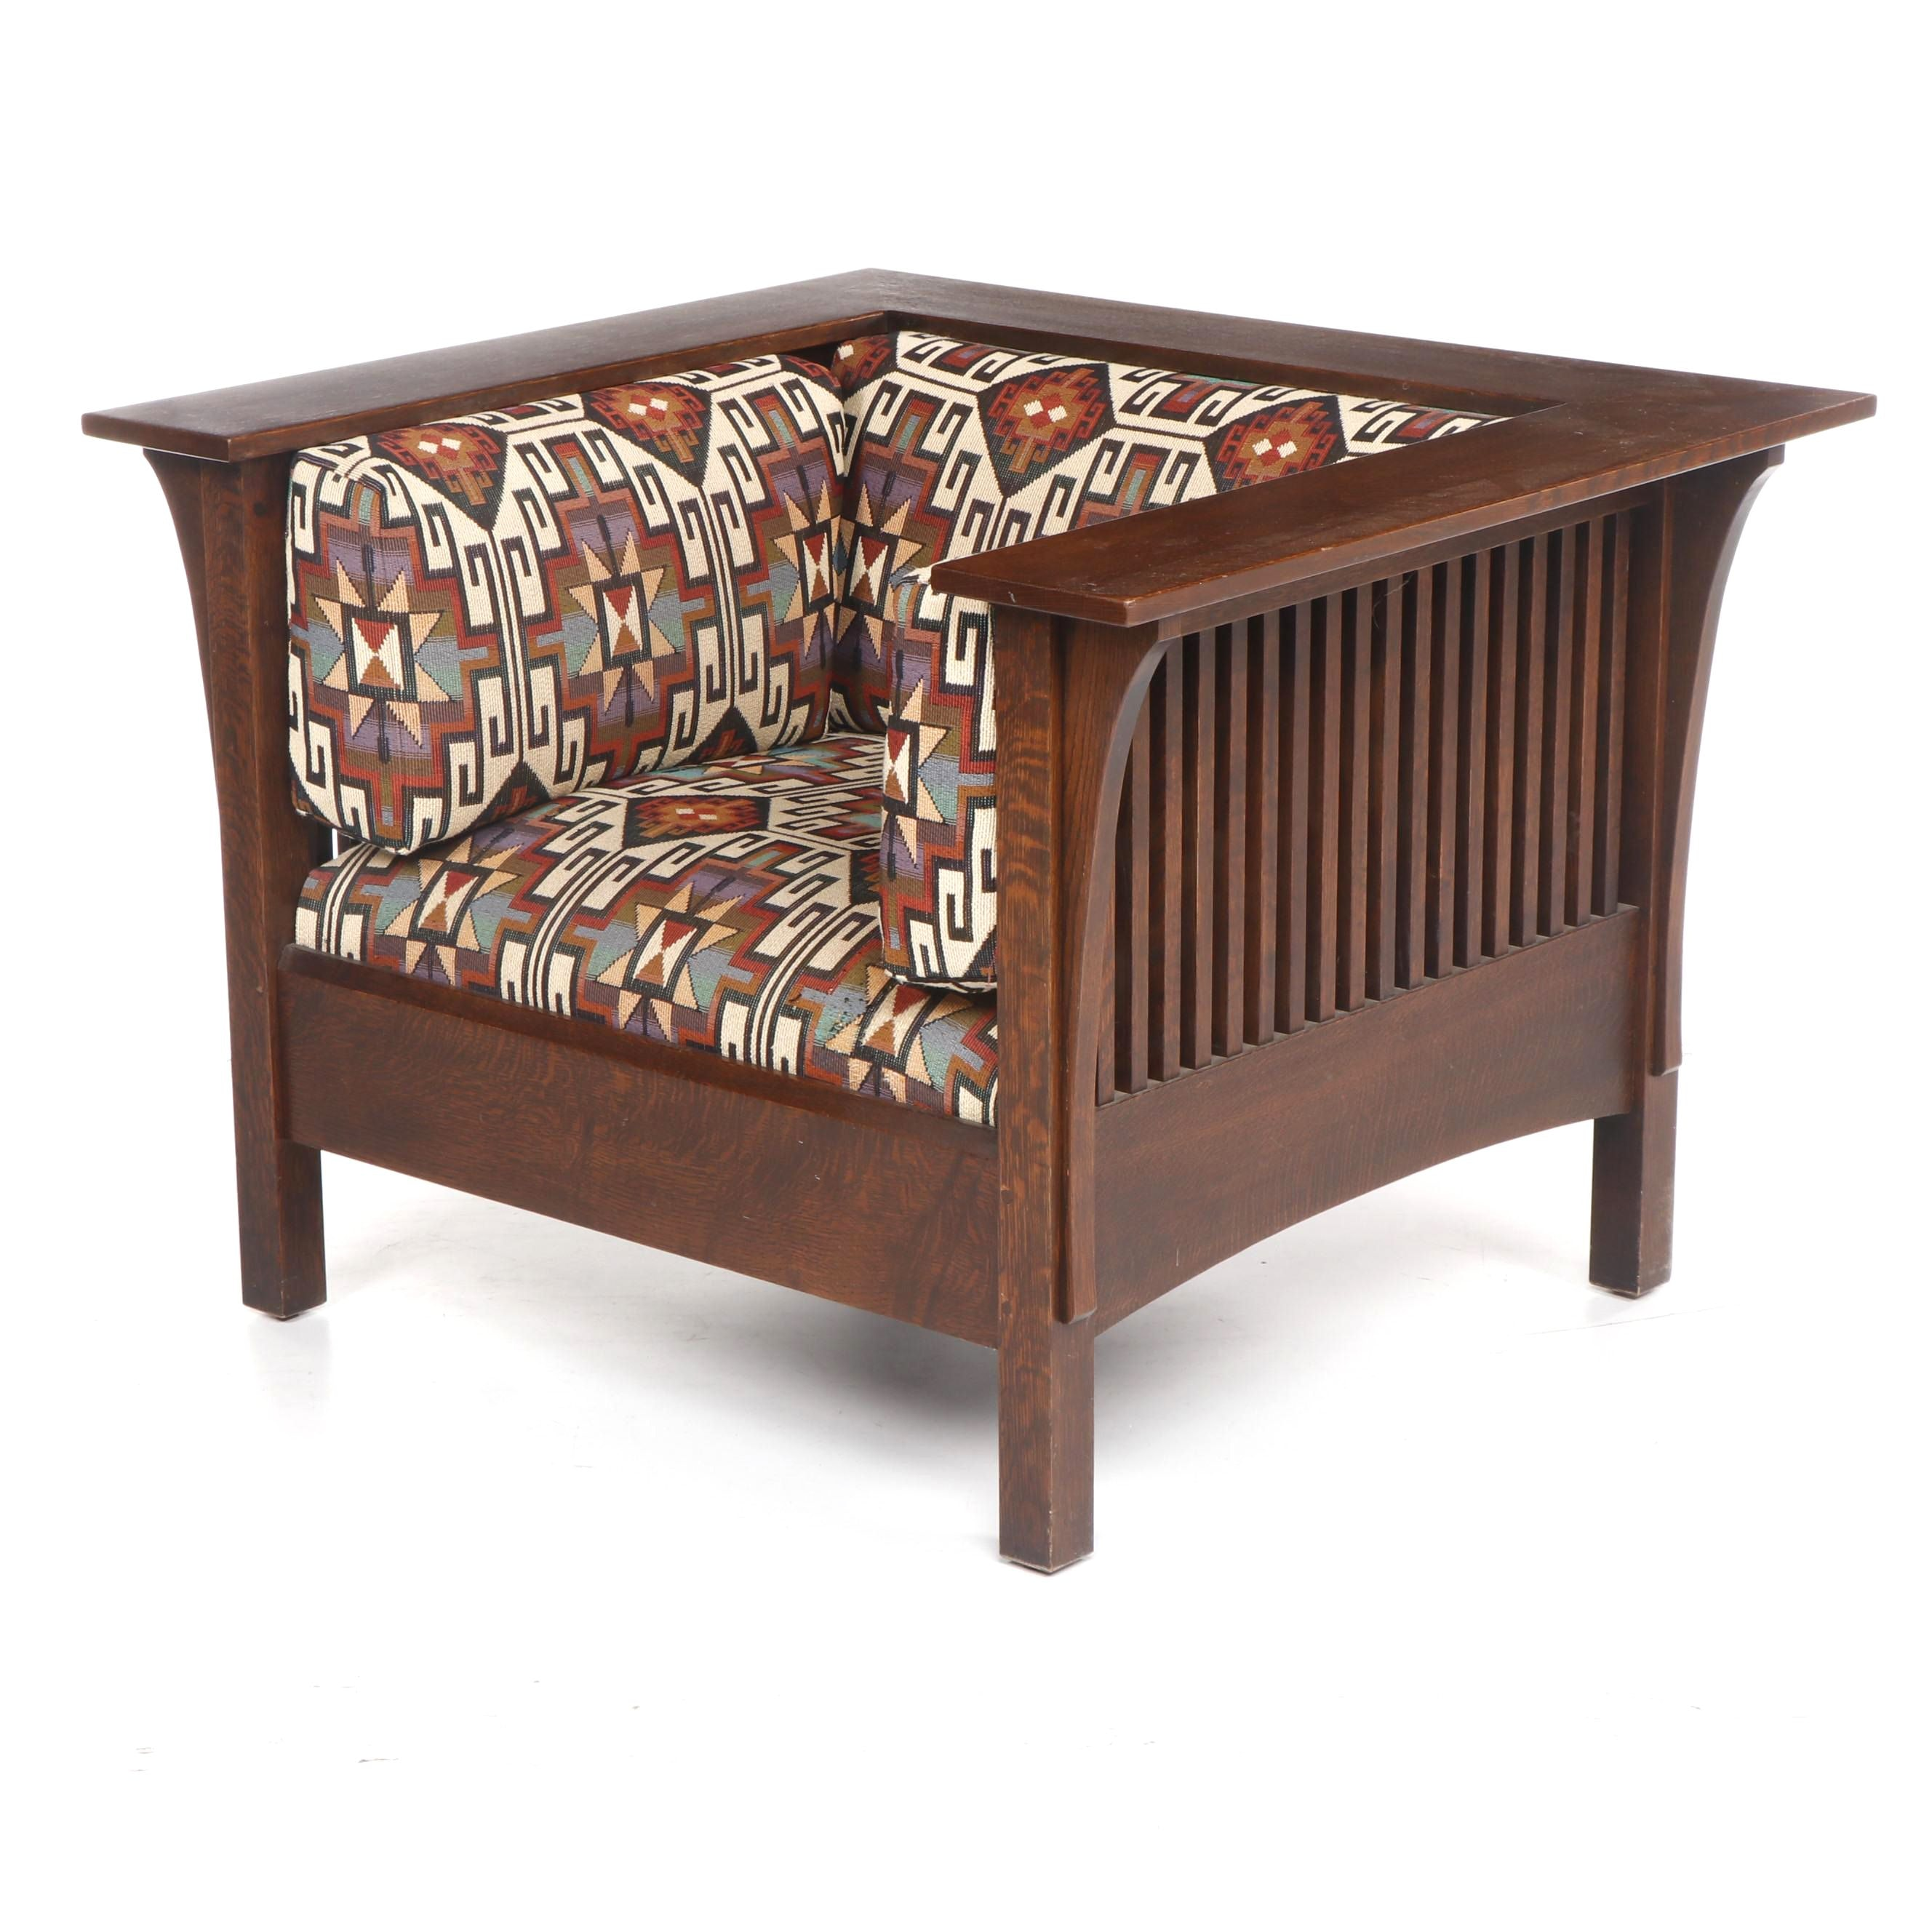 Stickley Contemporary Arts and Crafts Oak Overstuffed Club Chair